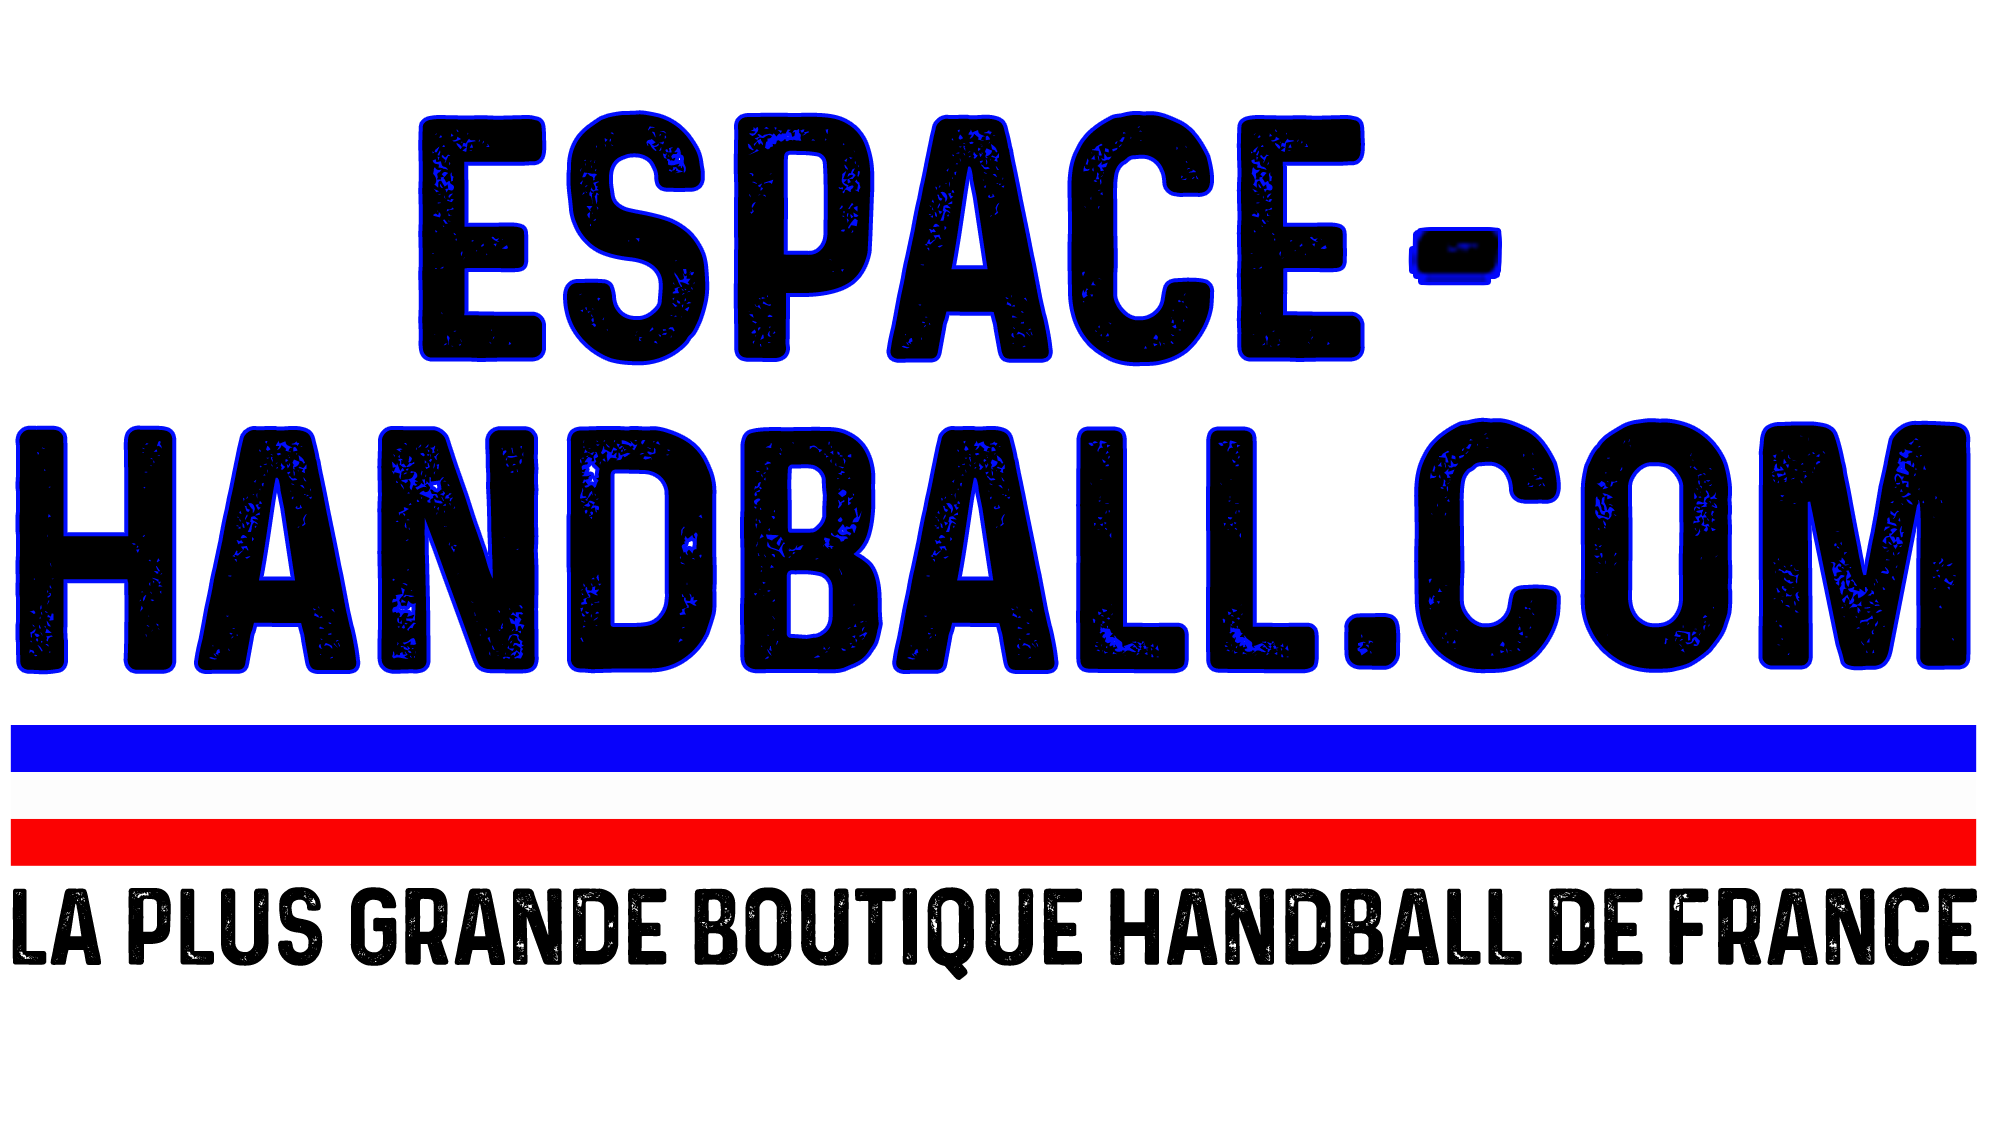 Espace-Handball.com | La plus grande boutique Handball de France